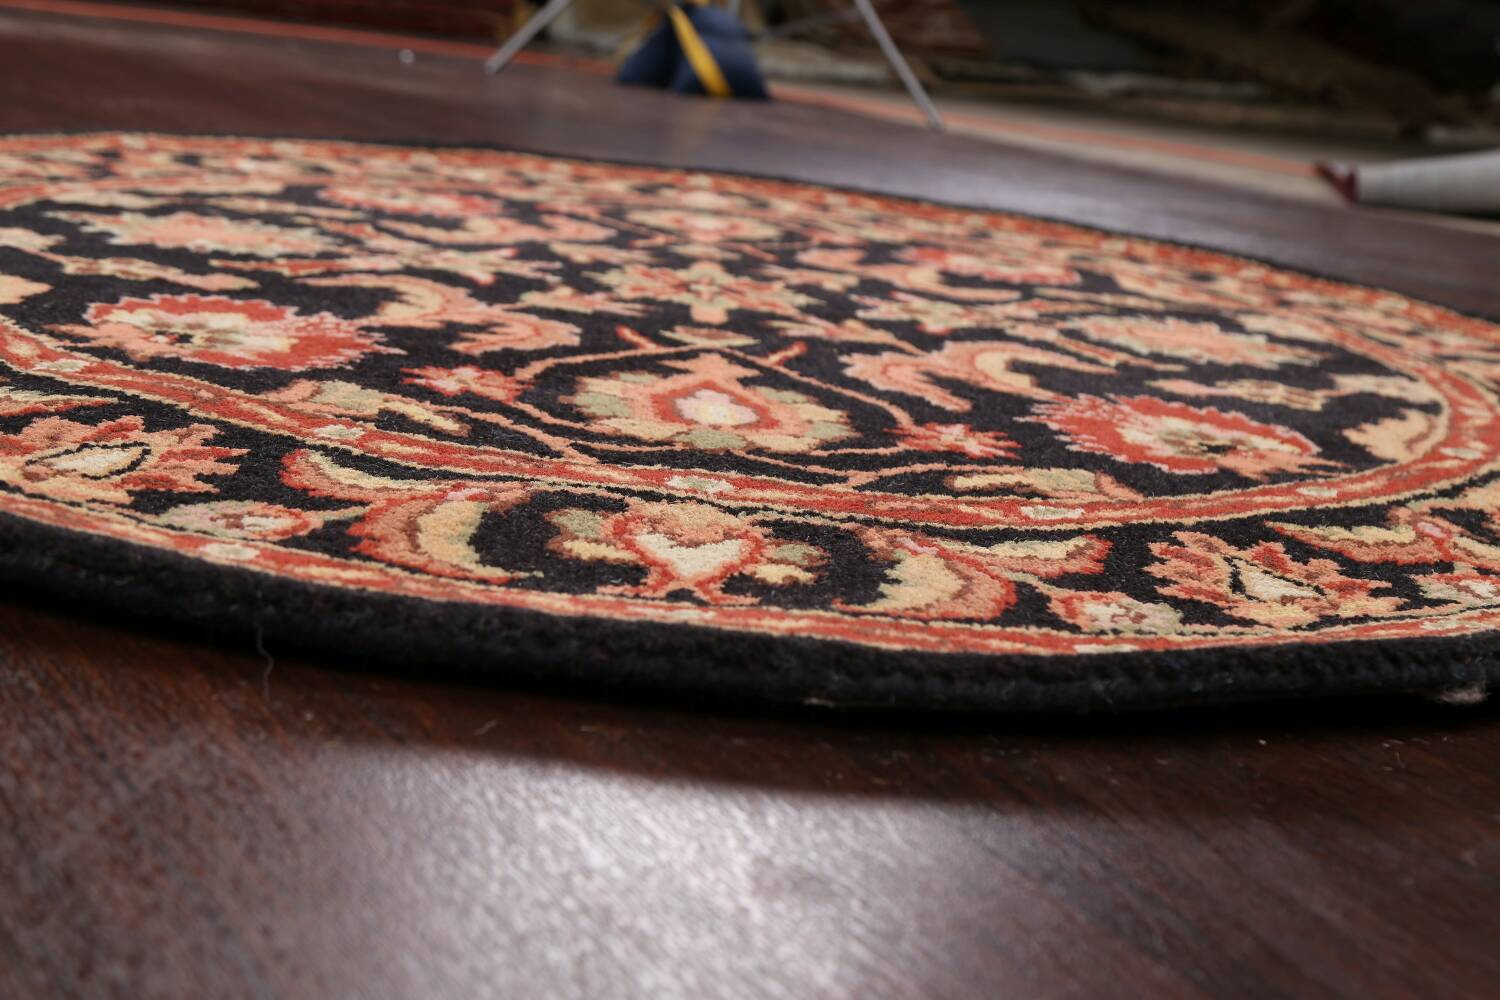 Floral Round Rug 5x5 image 7